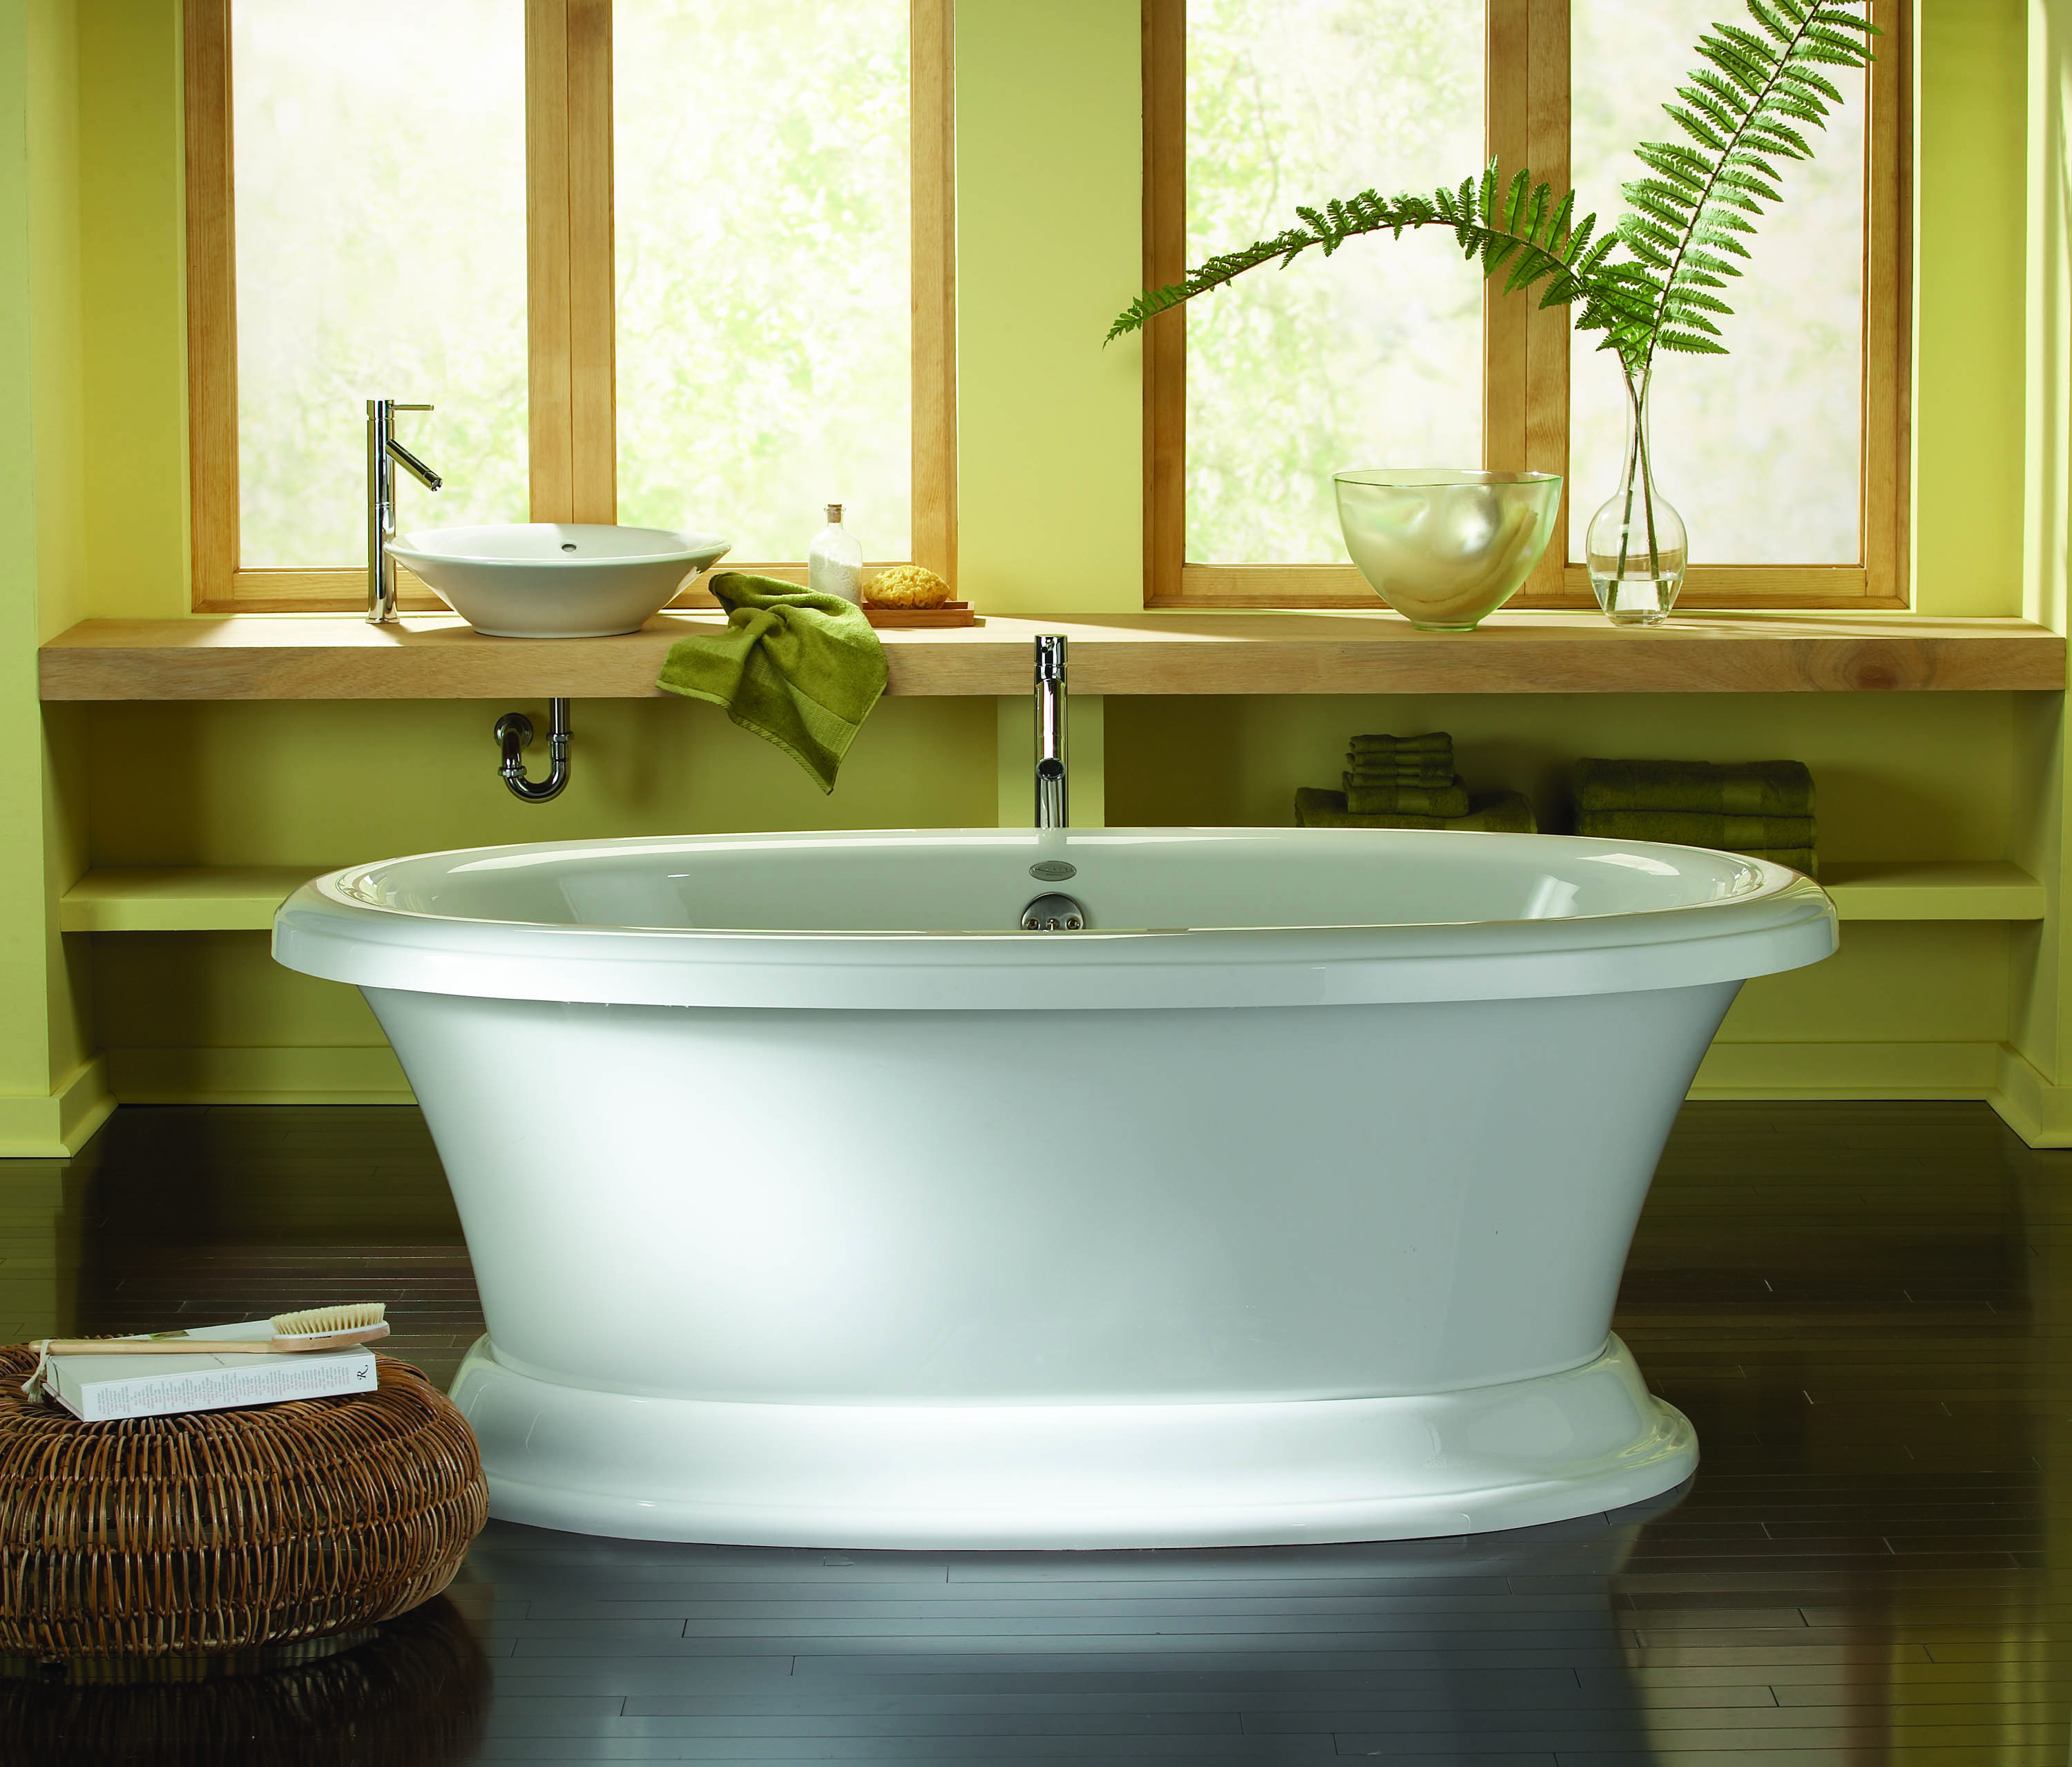 cooper tub works in a variety of decors and is sized for standard bathtub alcoves